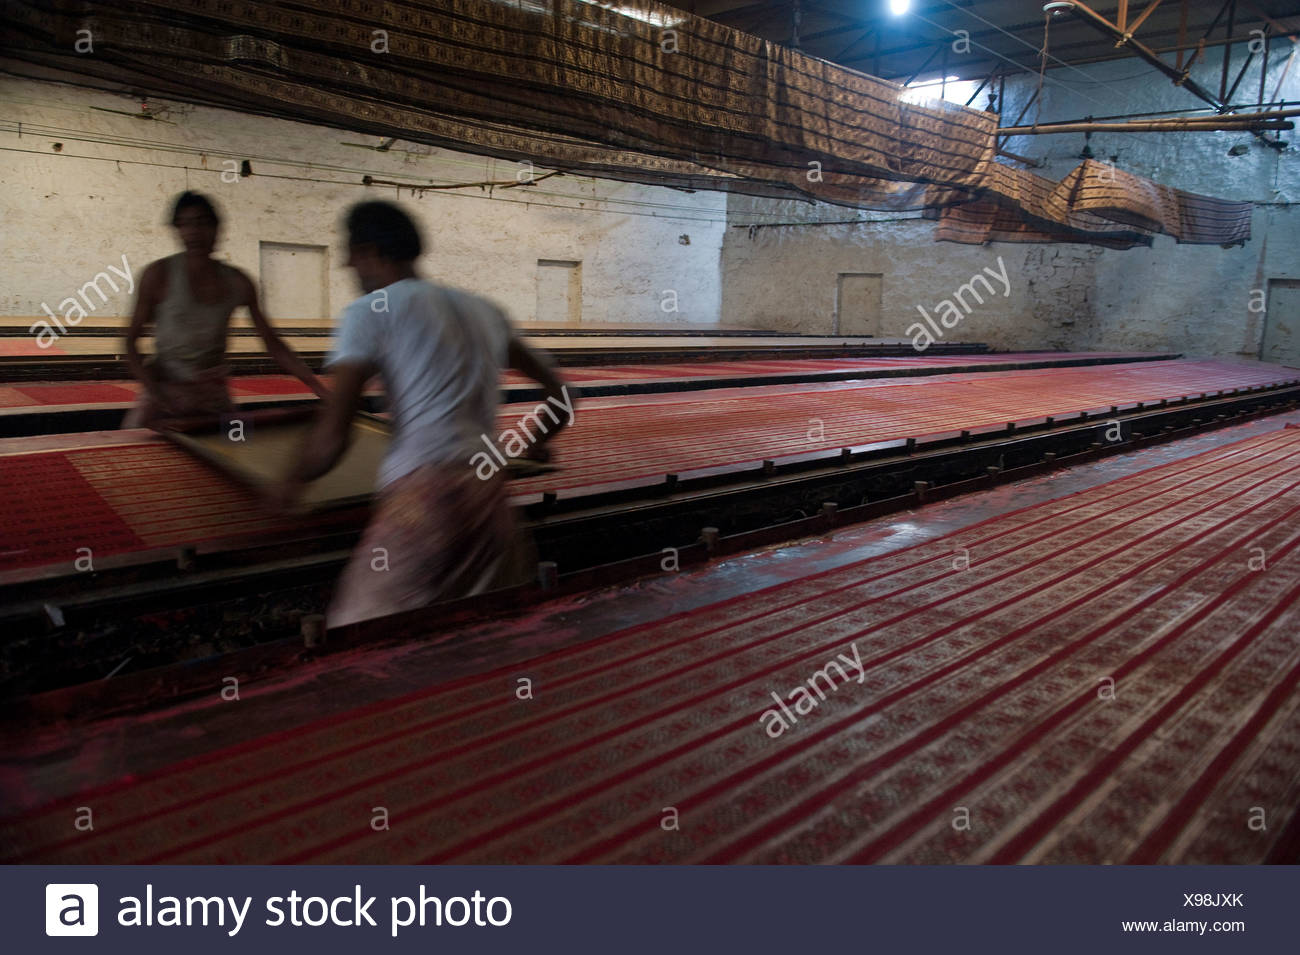 Dyeing of previously printed fabric, Sanganer dyeing centre near Jaipur, Rajasthan, India, Asia - Stock Image